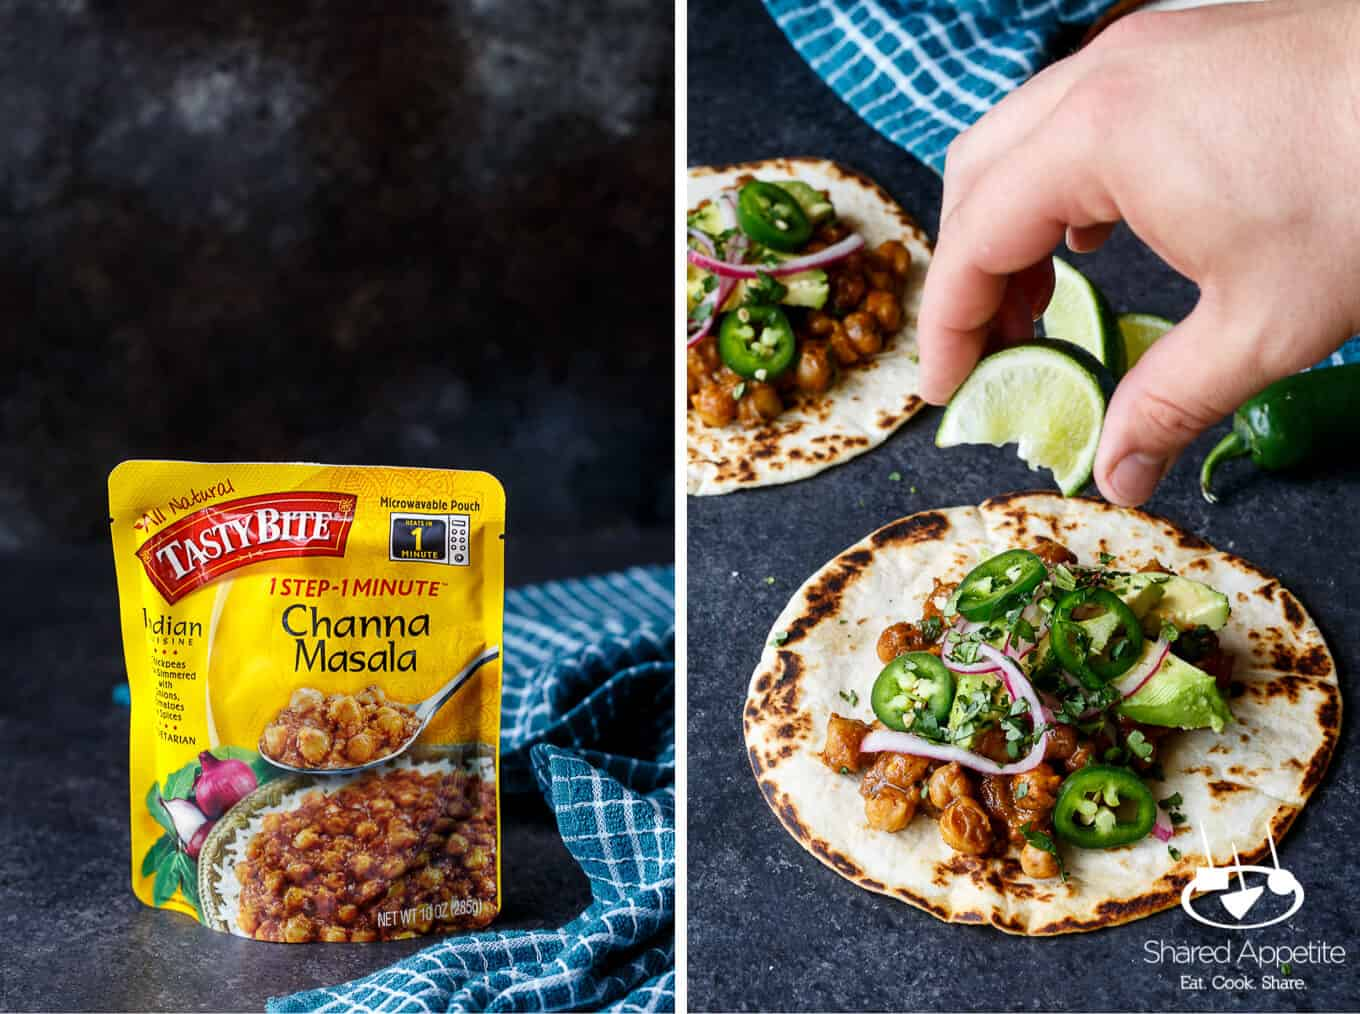 Channa masala vegetarian indian tacos shared appetite channa masala is now available anytime i want it i just need to open my pantry pop a pouch of tasty bite channa masala in the microwave forumfinder Gallery